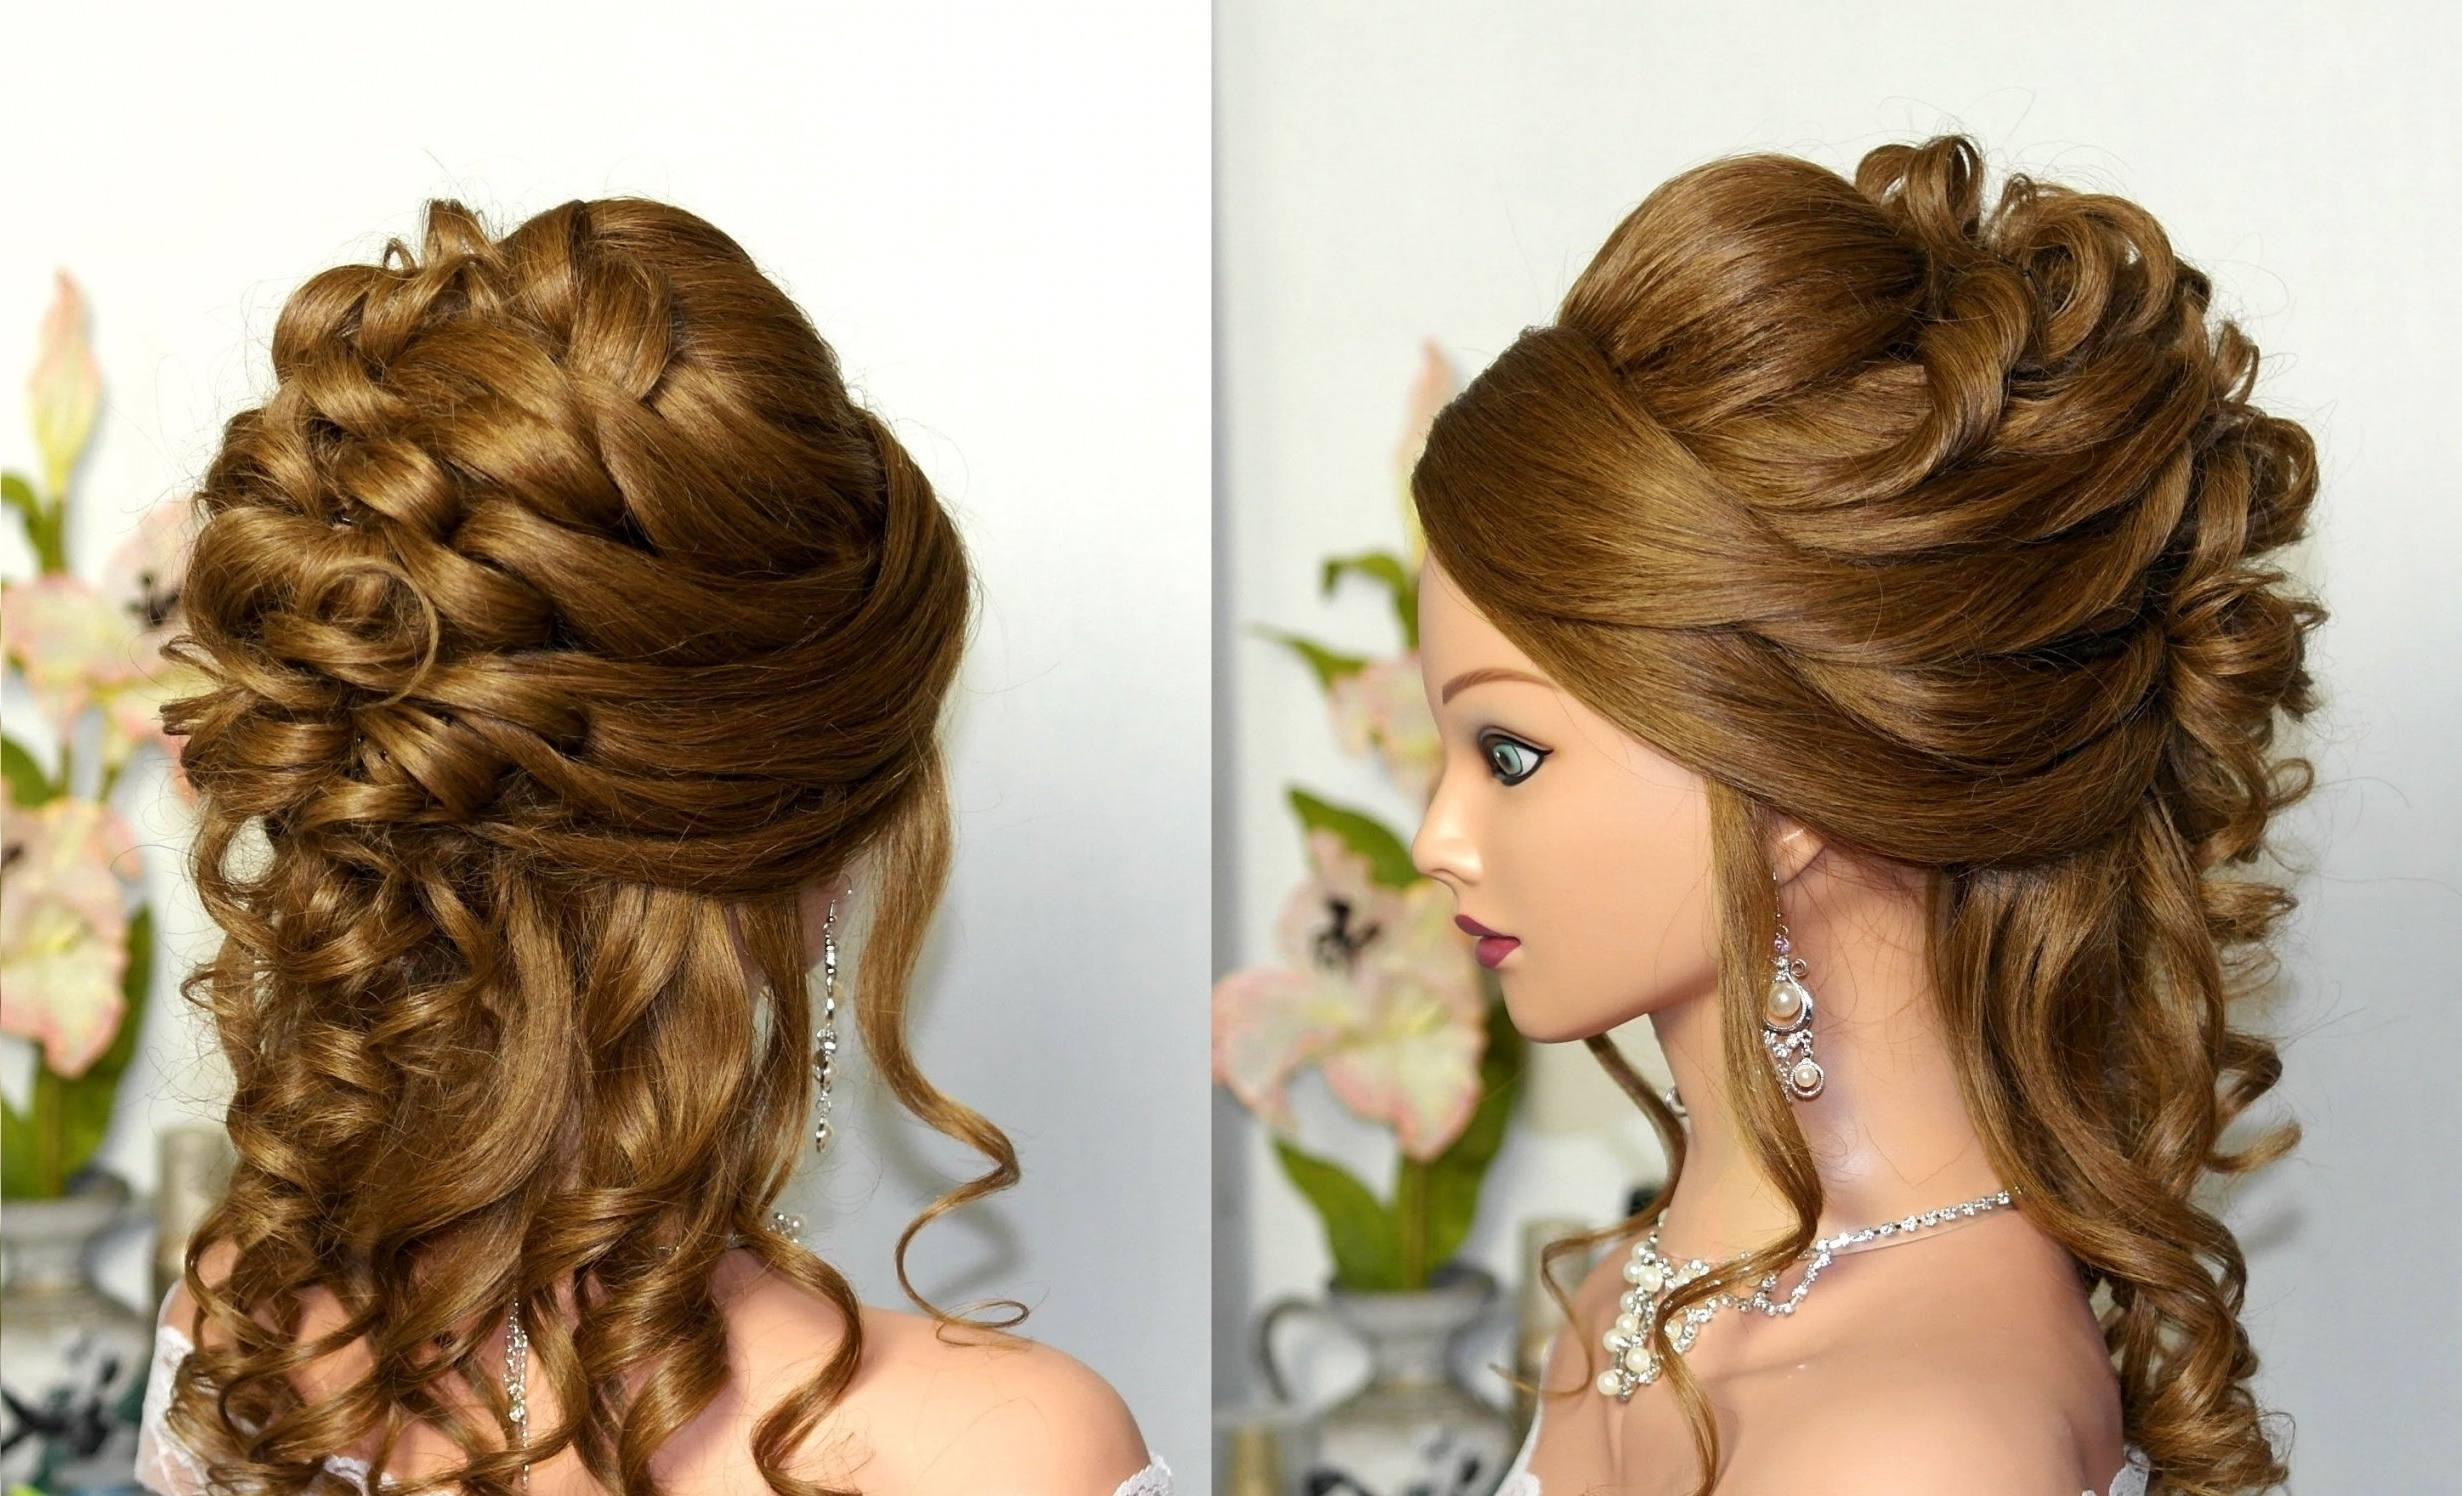 2019 Popular Simple Wedding Hairstyles For Long Curly Hair